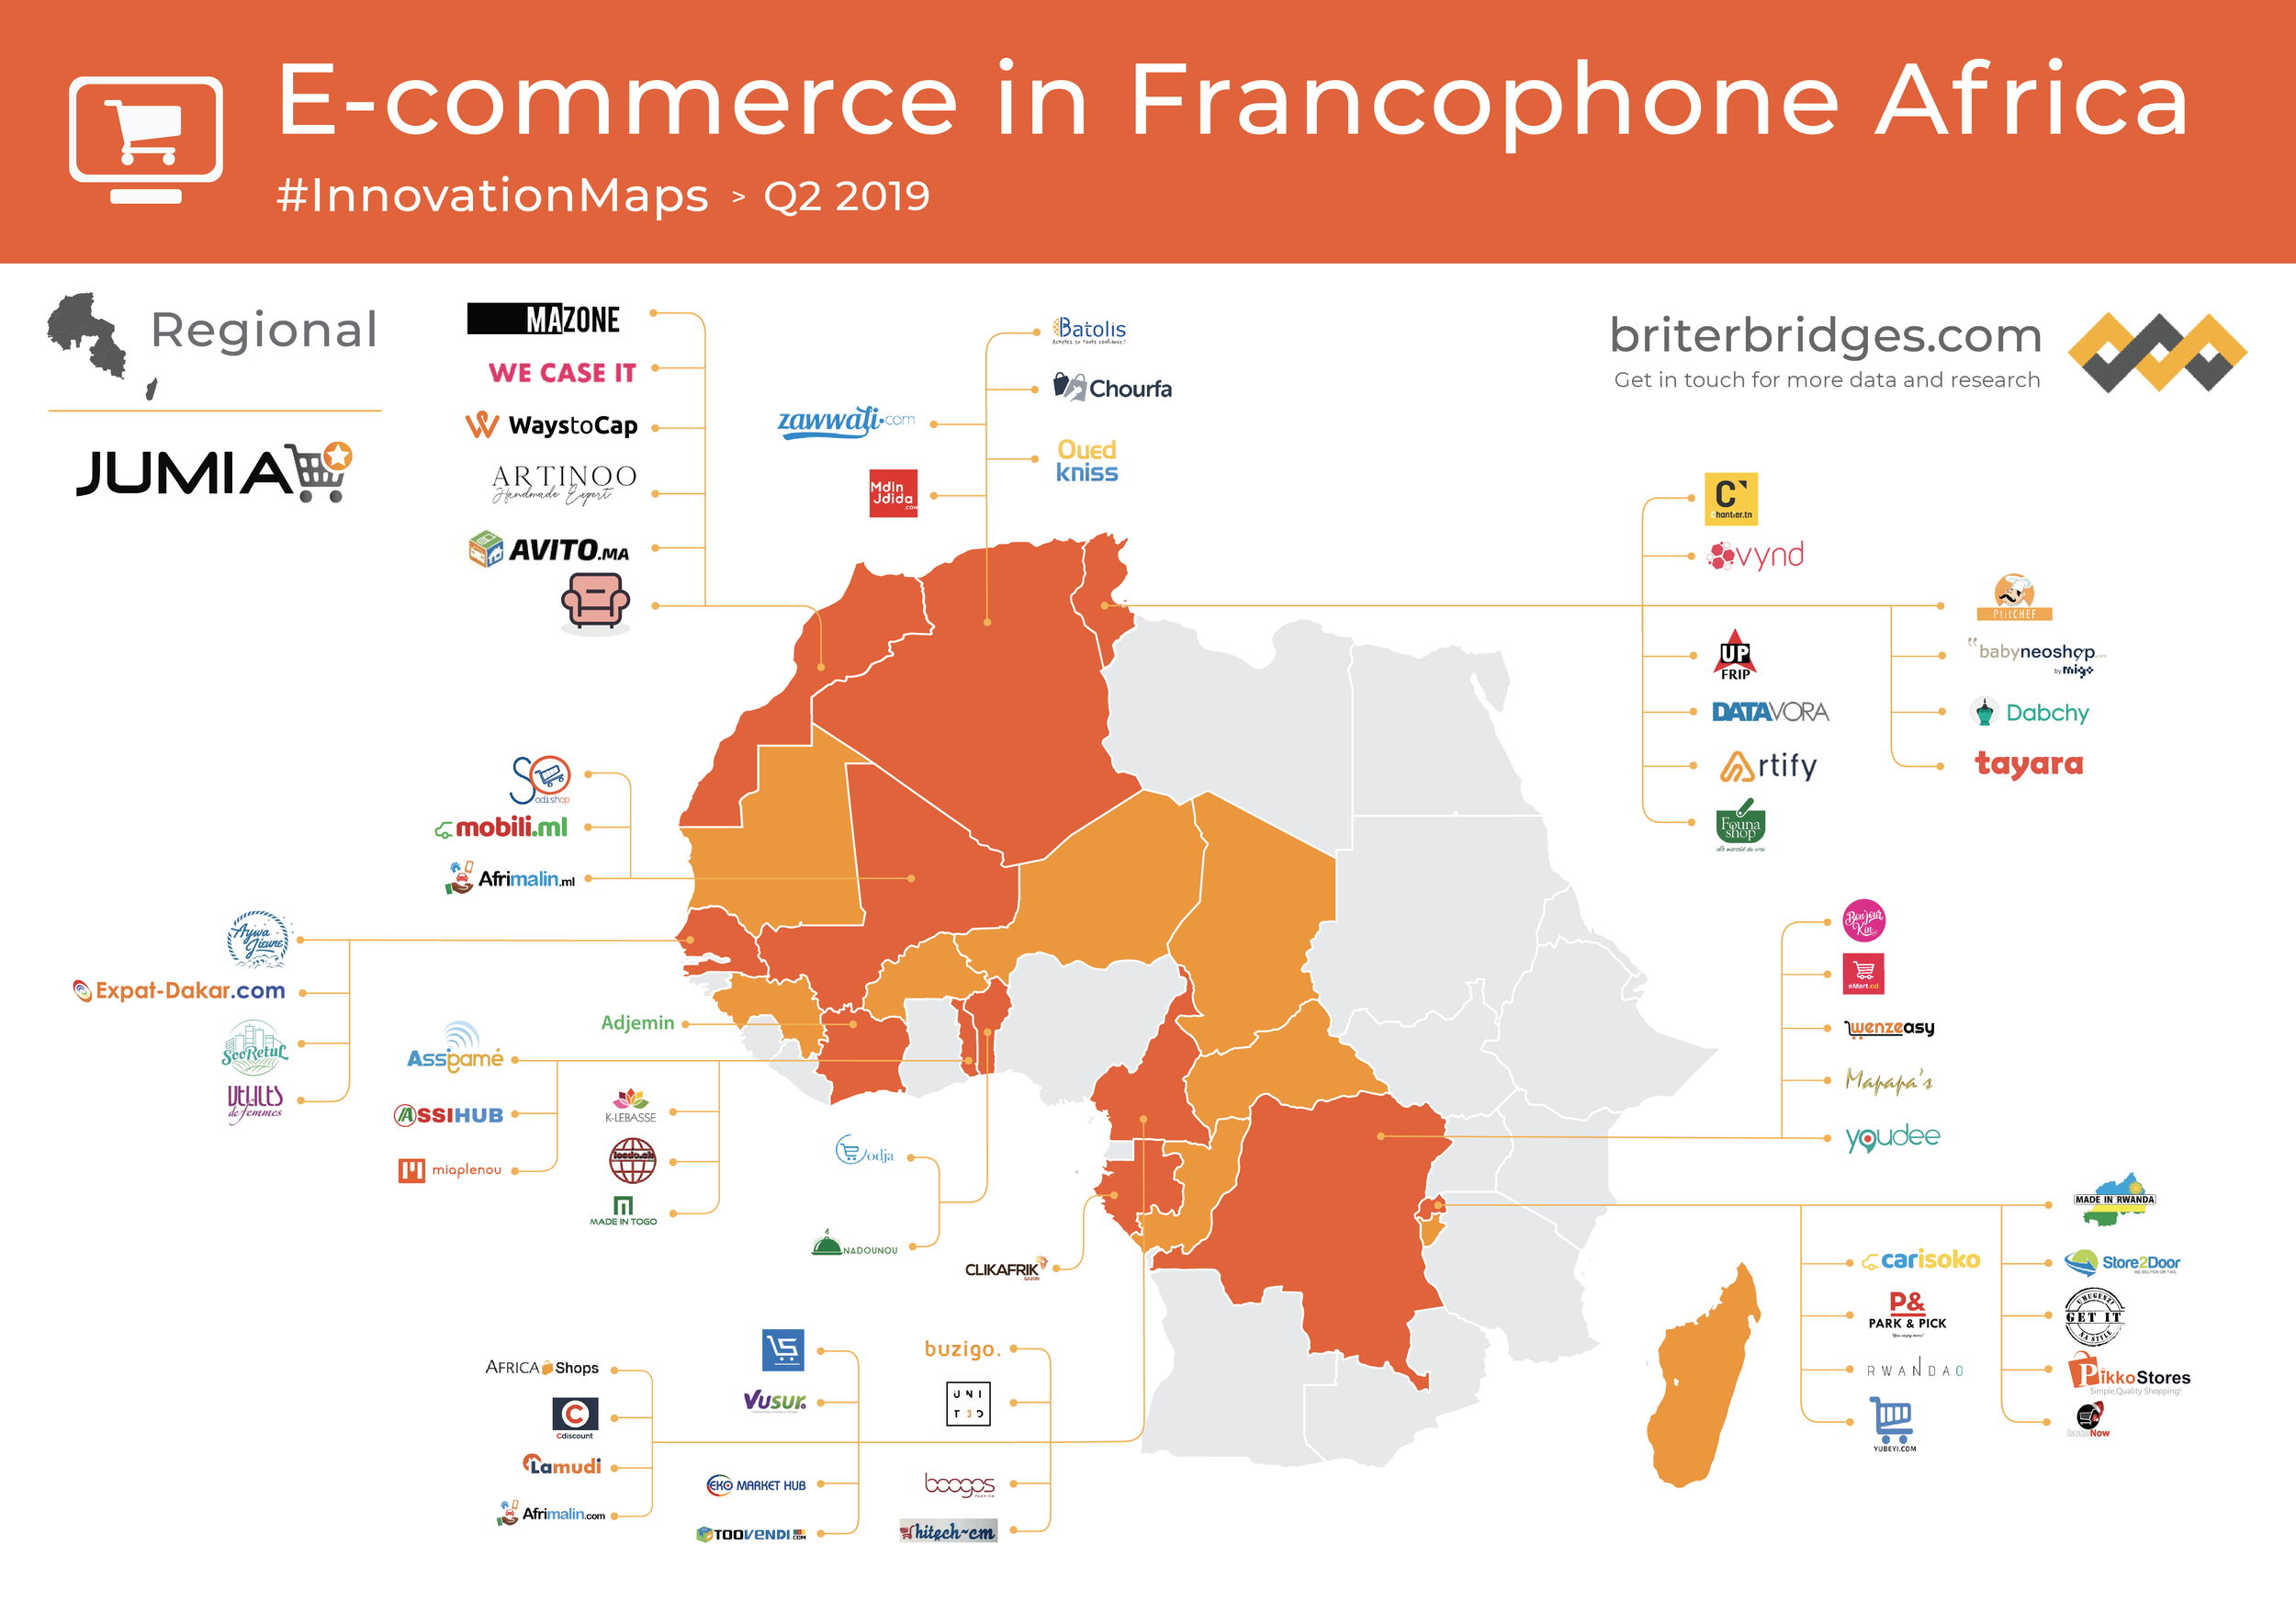 E-commerce in Francophone Africa